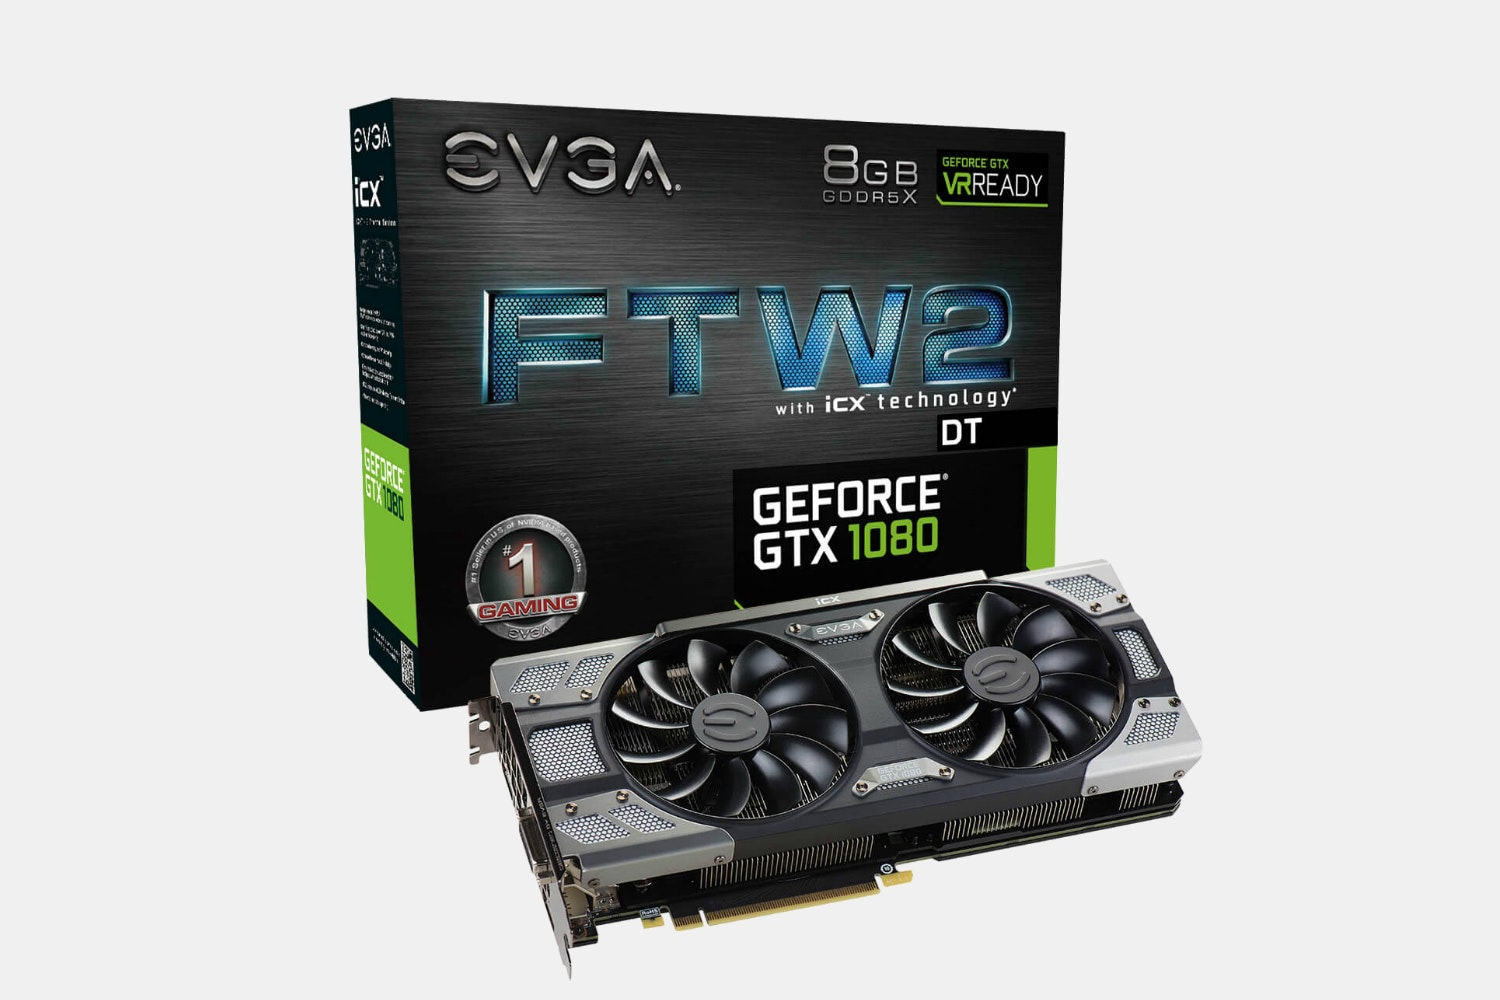 EVGA GeForce GTX 1080 FTW2 DT GAMING